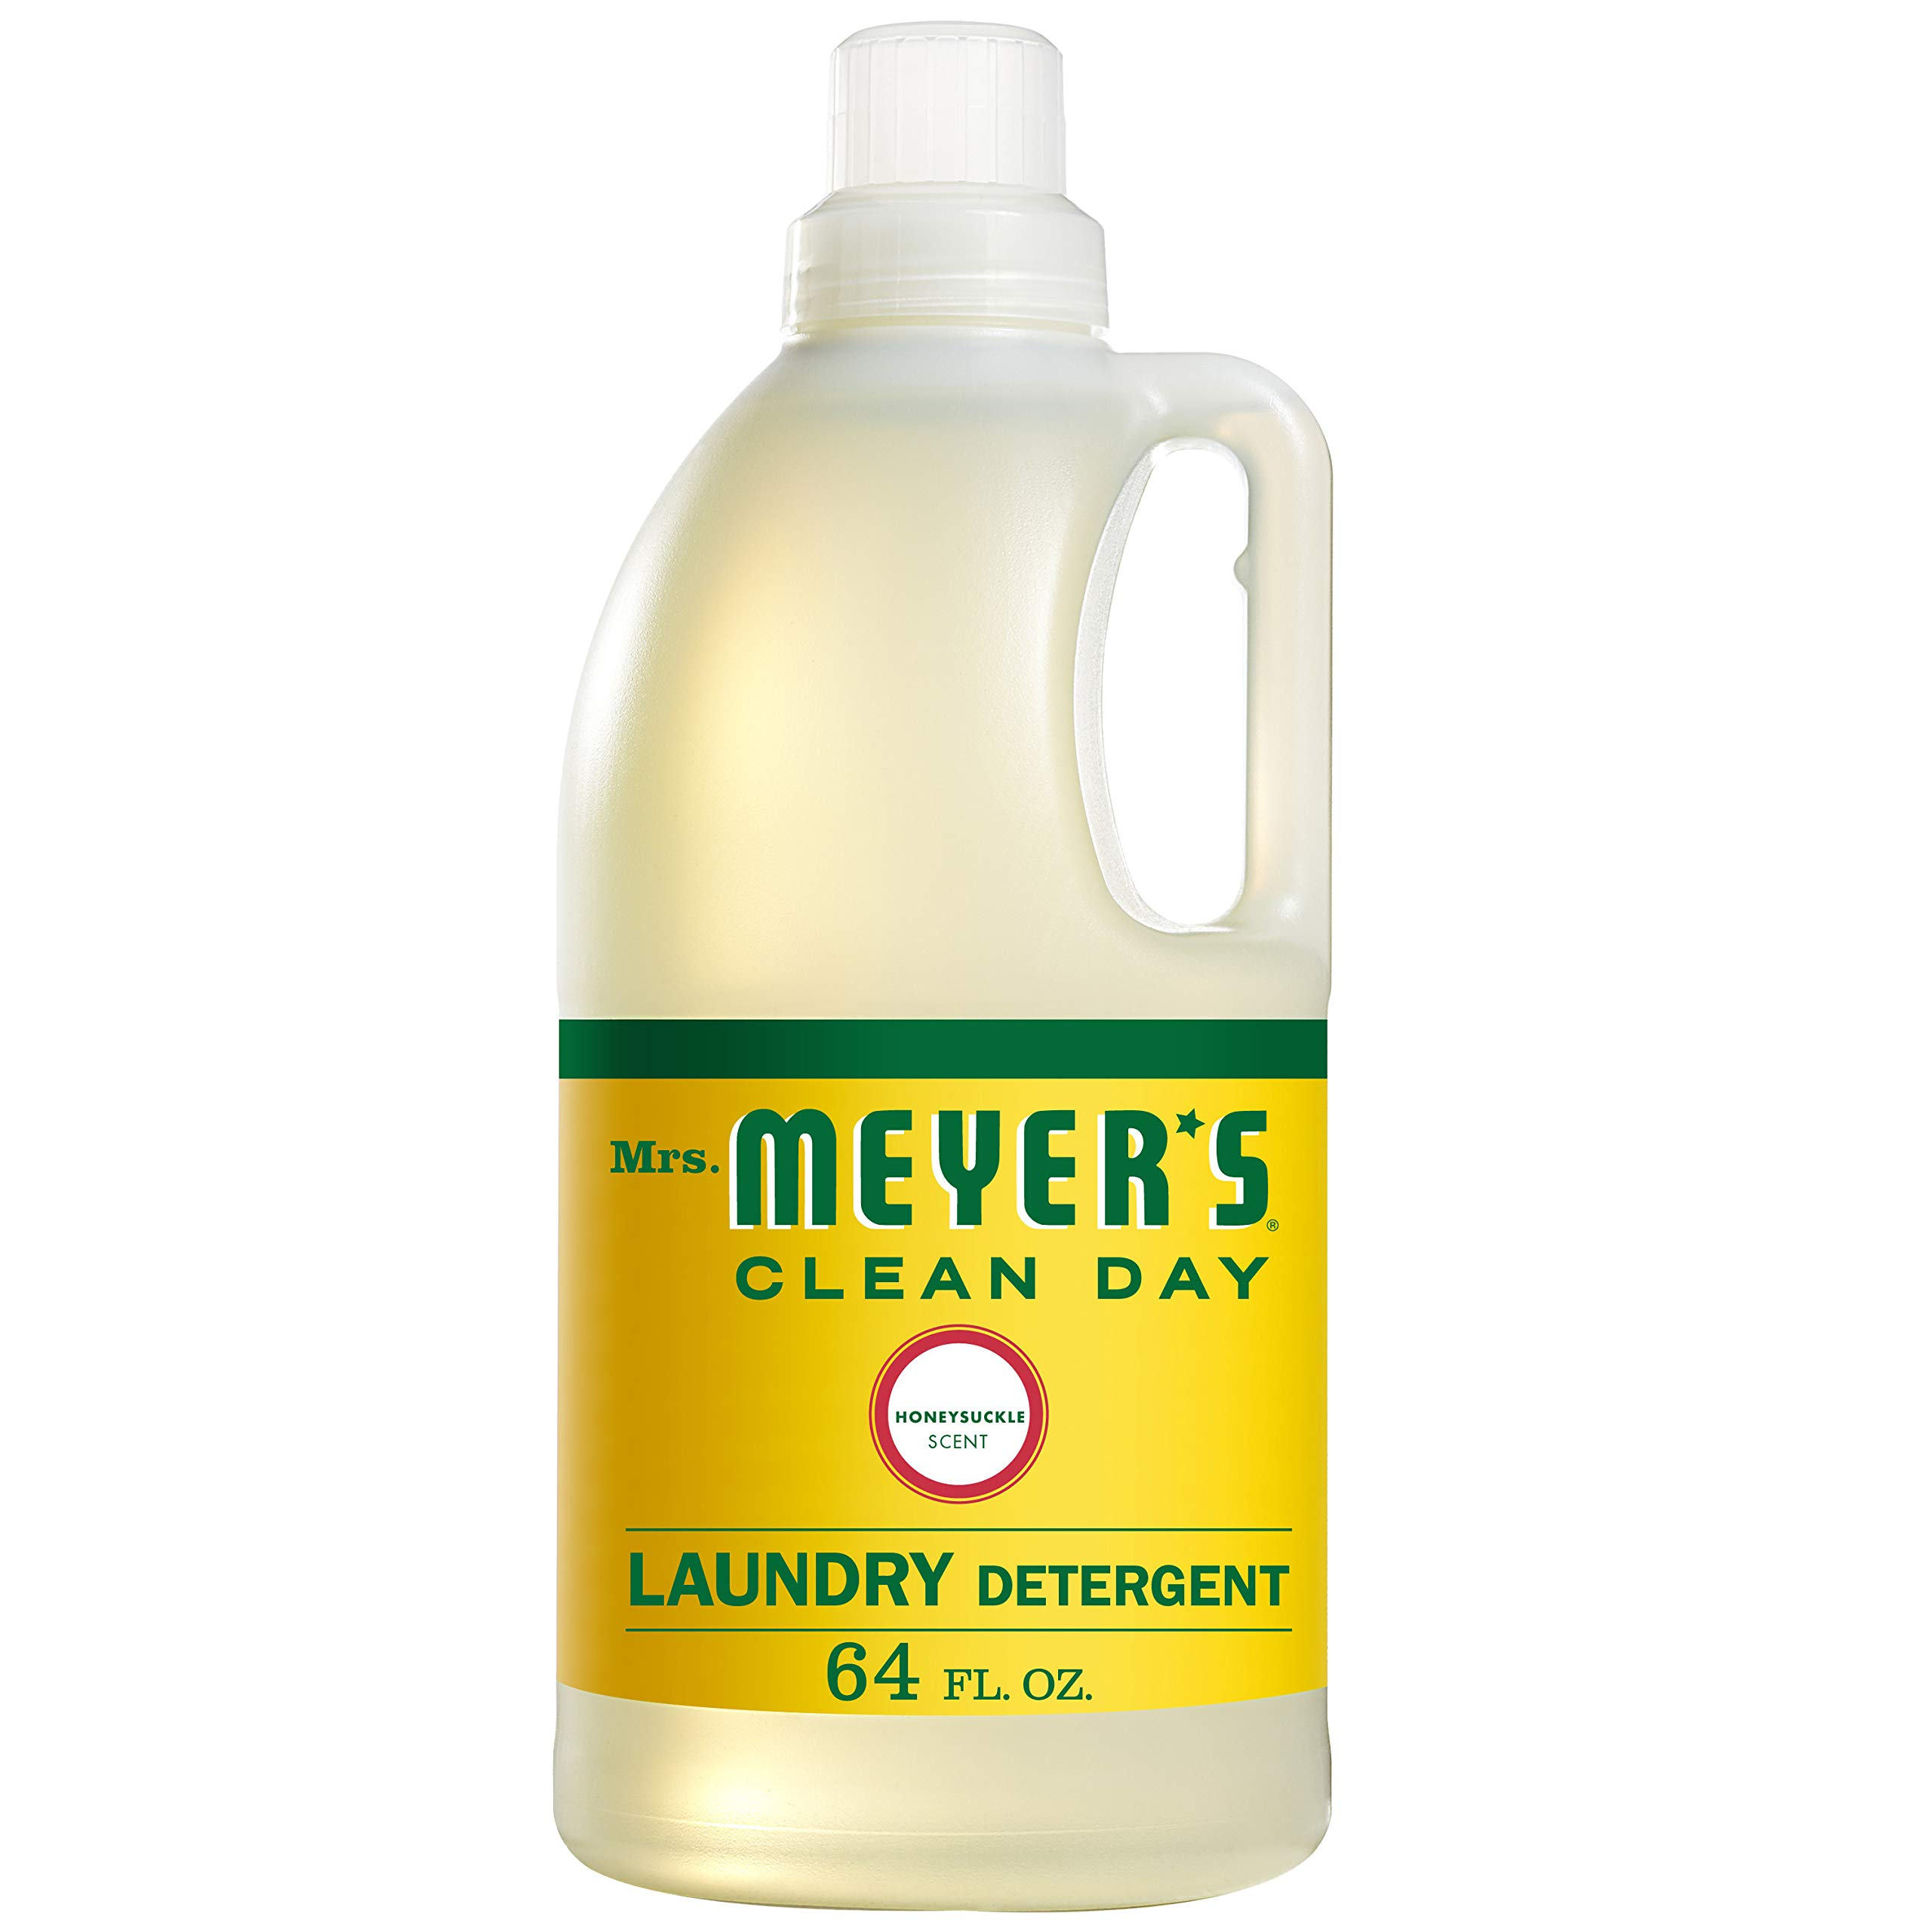 Mrs. Meyer's Laundry Detergent, Honeysuckle, 64 Fluid Ounce by Mrs. Meyers